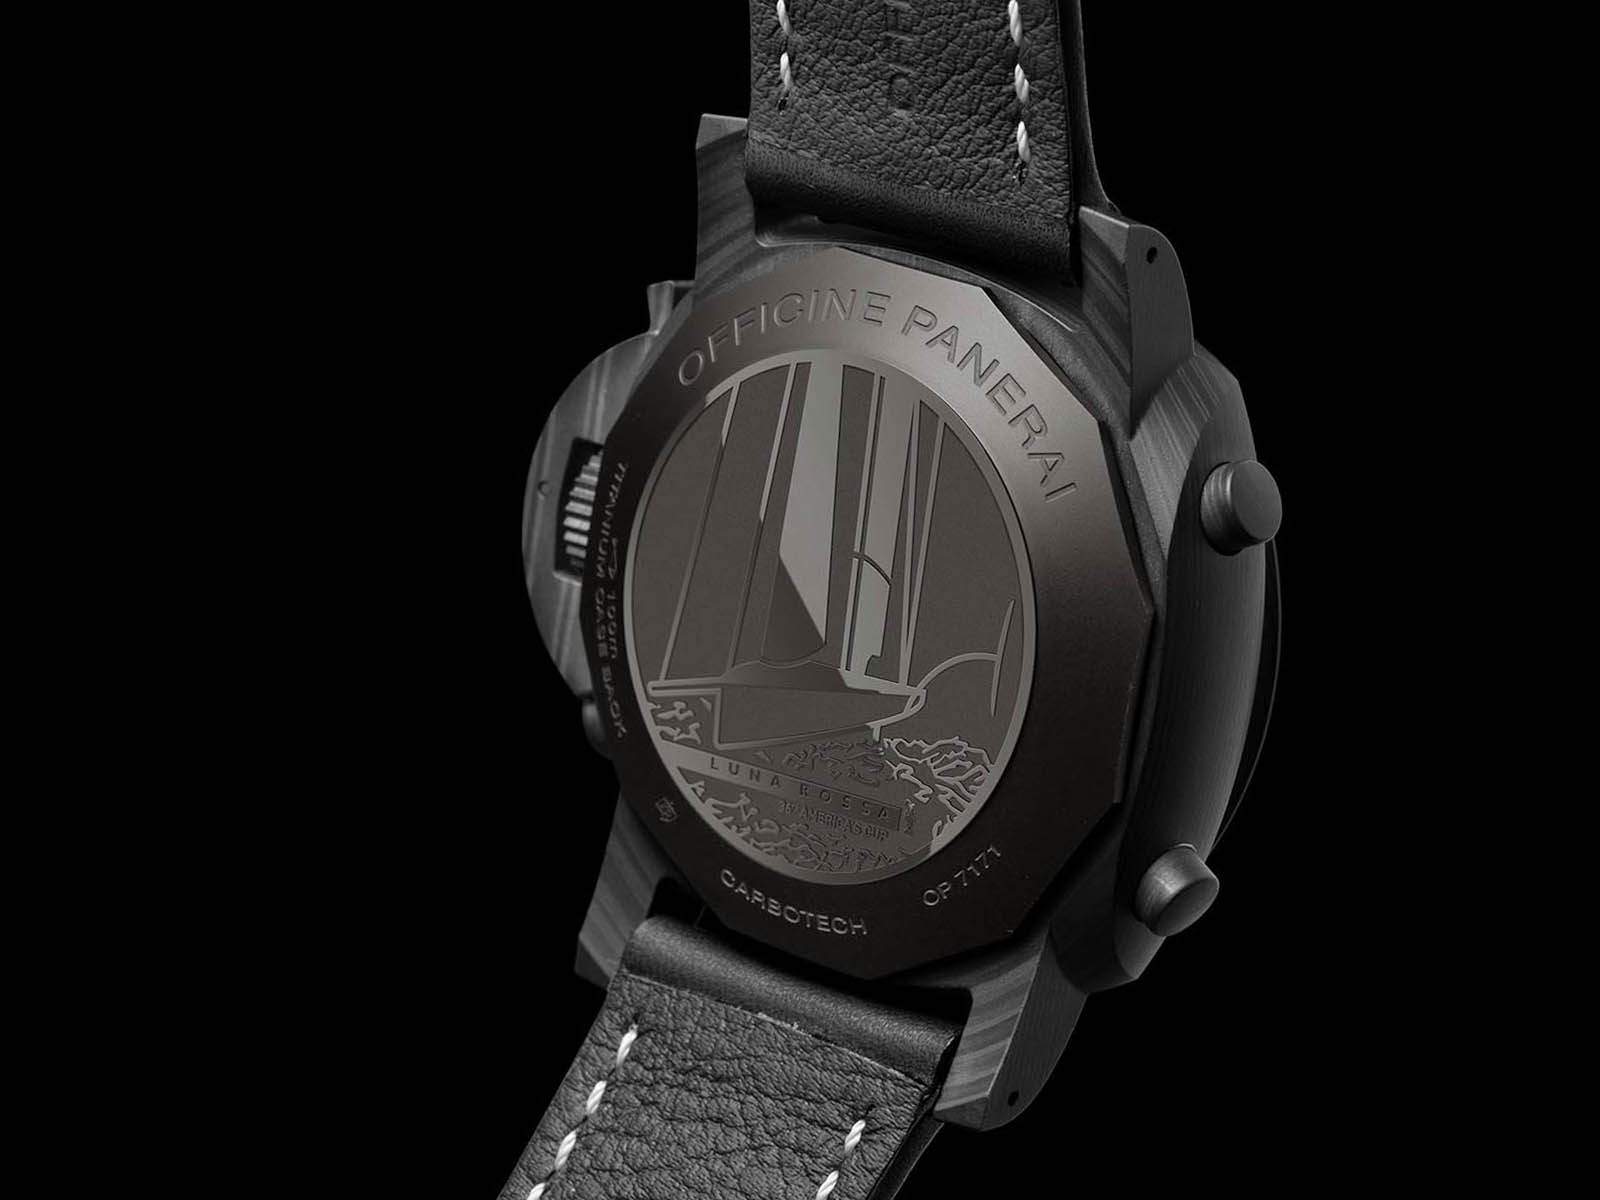 panerai-luminor-luna-rossa-15.jpg